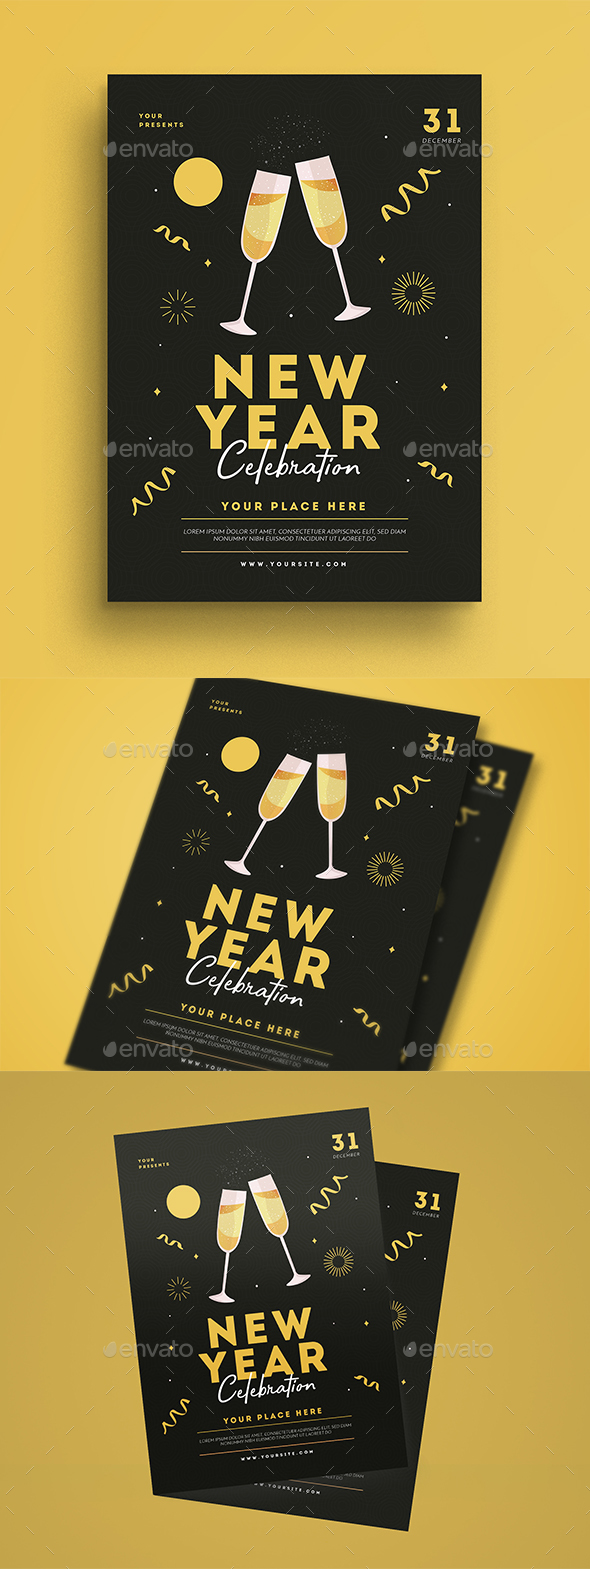 New Year Event Celebration - Events Flyers